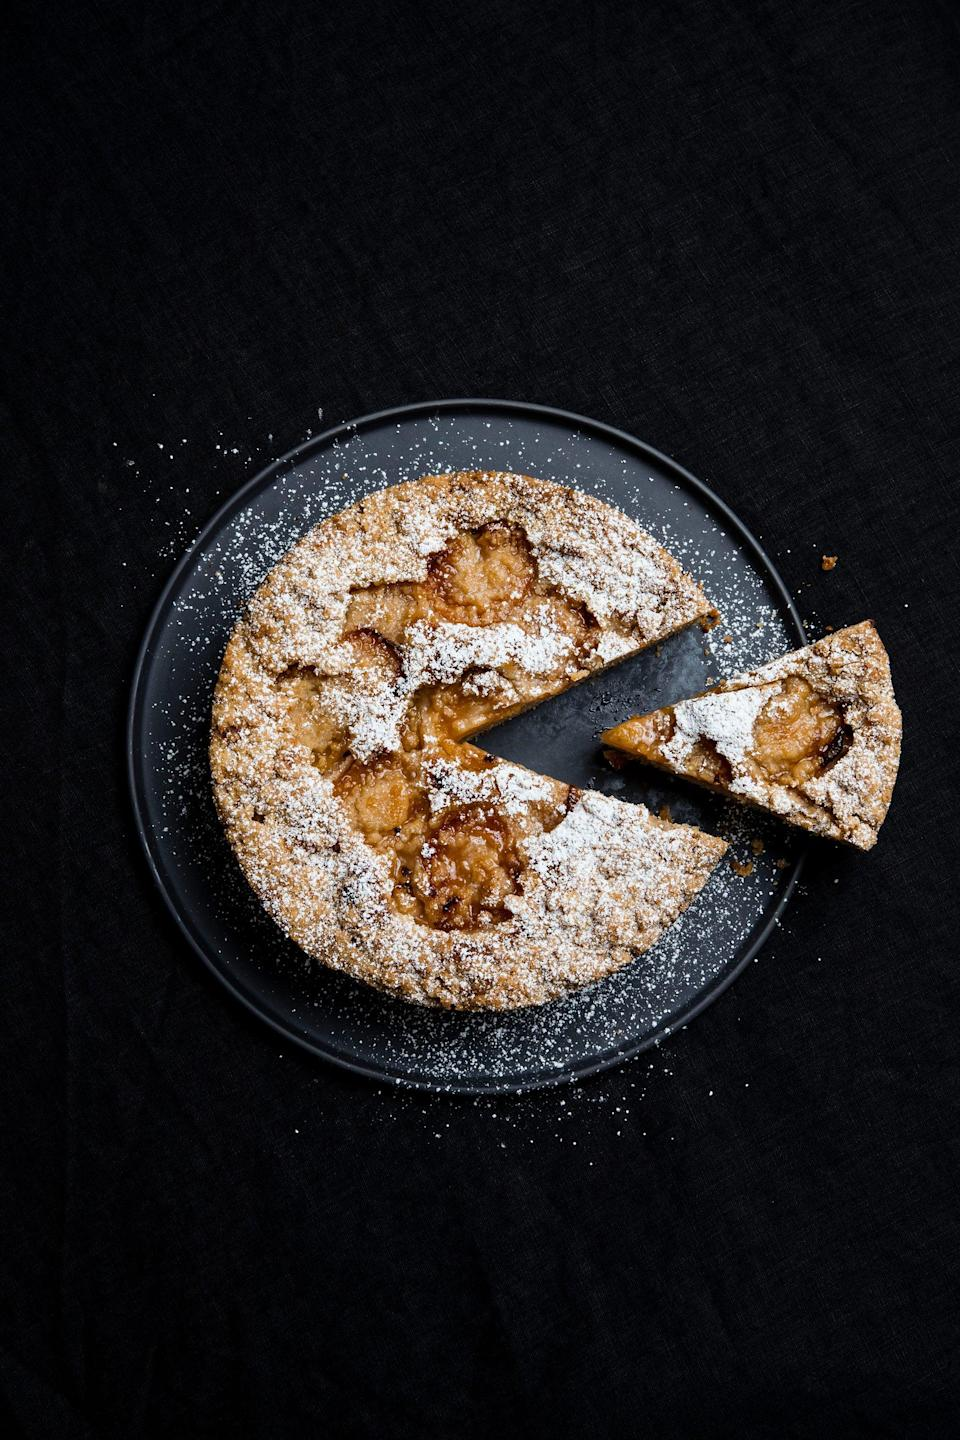 """<strong>Apricot crumble cake</strong><br><em>Serves 8–12</em><br><br><strong>Ingredients</strong><br>225 g plain flour<br>3 tsp baking powder<br>½ tsp salt<br>1 tsp ground cinnamon<br>½ tsp ground cardamom<br>115 g caster sugar<br>3 tsp <a href=""""https://www.hollandandbarrett.com/shop/product/orgran-no-egg-60072854?skuid=072854&utm_campaign=shopping&utm_medium=cpc&utm_source=google&&gclid=EAIaIQobChMIor-S-ZyO7AIVlentCh2xUwA6EAQYASABEgK67fD_BwE&gclsrc=aw.ds"""" rel=""""nofollow noopener"""" target=""""_blank"""" data-ylk=""""slk:No Egg"""" class=""""link rapid-noclick-resp"""">No Egg</a><br>80 ml cold water<br>125 g vegan butter, melted<br>125 ml vegan milk<br>1 tsp vanilla paste or extract<br>1 × 825 g tin apricot halves, drained (reserve the liquid for another use or reduce it with a little sugar and use as a syrup to drizzle over the cake)<br>icing sugar, for dusting (optional)<br><br><em>For the crumble:</em><br>60 g plain flour<br>1 tsp ground cinnamon<br>100 g caster sugar<br>55 g cold butter, cut into cubes<br><br><strong>Instructions</strong><br>1. Preheat the oven to 170°C (340°F). Grease and line the base of a 20 cm (8 in) round cake tin.<br><br>2. Sift the flour, baking powder, salt and ground spices into a bowl. Mix in the sugar.<br><br>3. In a jug, whisk together the No Egg and water, then mix in the melted butter, milk and vanilla. Pour into the dry ingredients and stir until combined (the batter will be quite thick).<br><br>4. To make the crumble, place the flour, cinnamon and sugar in a small bowl, then rub in the butter with your fingertips to make a coarse crumble.<br><br>5. Pour the batter into the prepared tin and smooth the surface. Arrange the apricots on top, cut side up, then sprinkle over the crumble. Bake for 45–55 minutes, or until a skewer inserted in the centre comes out clean.<br><br>6. Cool in the tin for 5 minutes, then carefully remove and cool completely on a wire rack. Finish with a light dusting of icing sugar if you like.<br><br>Leftovers will keep in an air"""